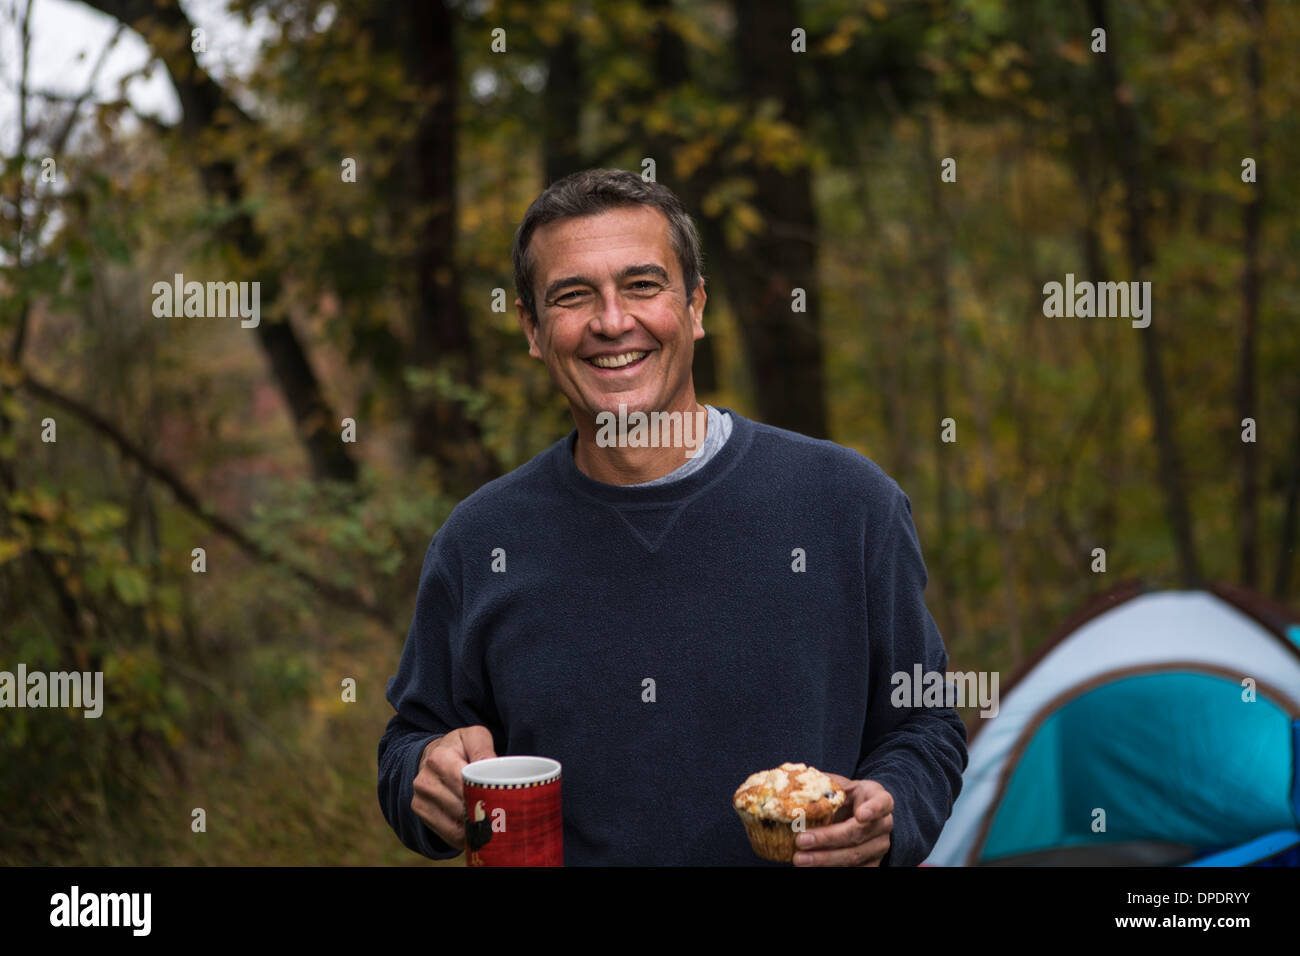 Mature man in forest holding cupcake et boisson chaude Photo Stock